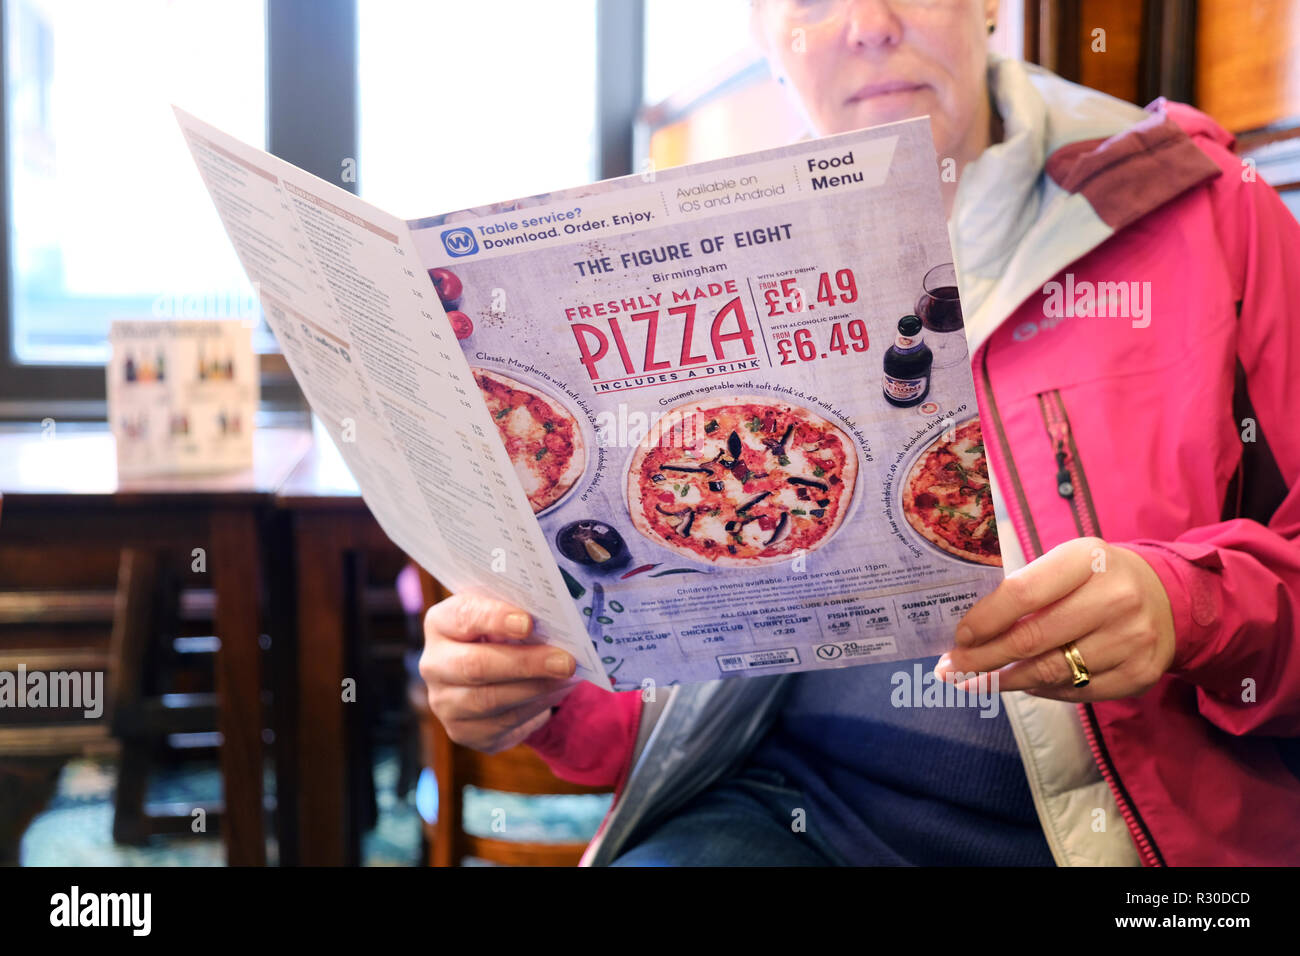 A female customer at a jd wetherspoons pub studies the menu card for food and meal options. The menu card cover features the chains pizza offers - Stock Image